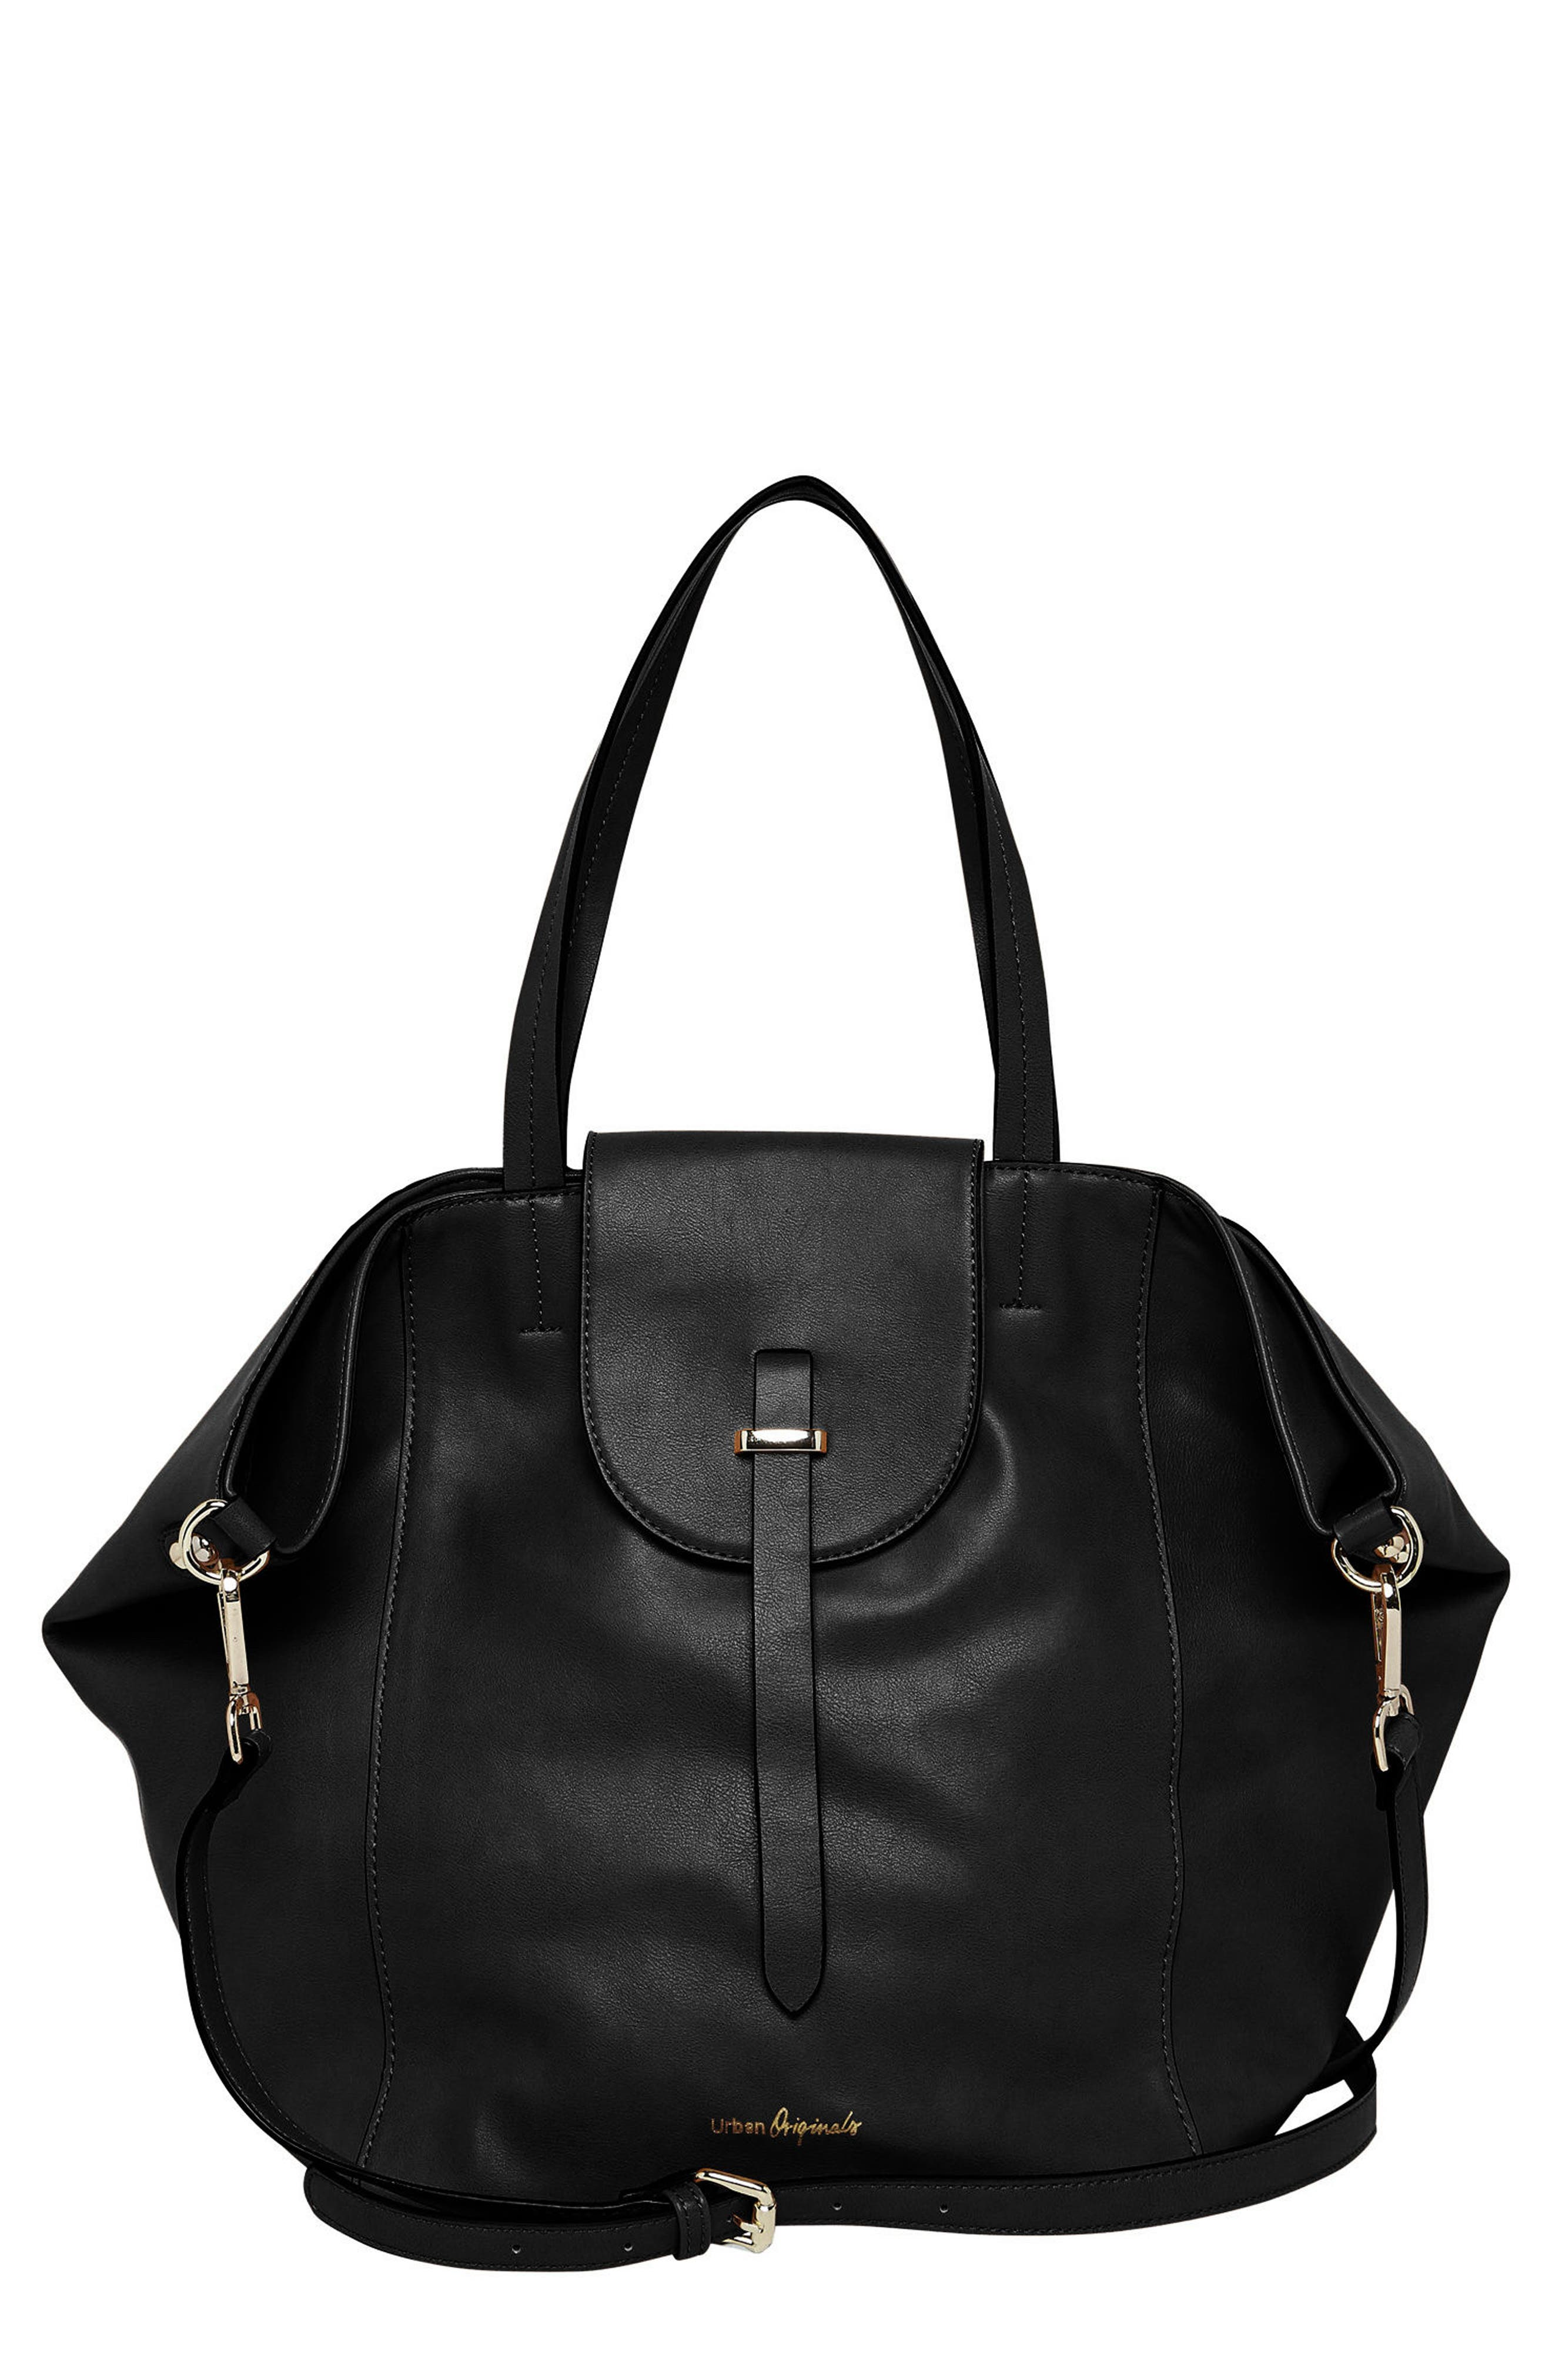 URBAN ORIGINALS,                             Urban Orginals Desire Vegan Leather Bucket Bag,                             Main thumbnail 1, color,                             001